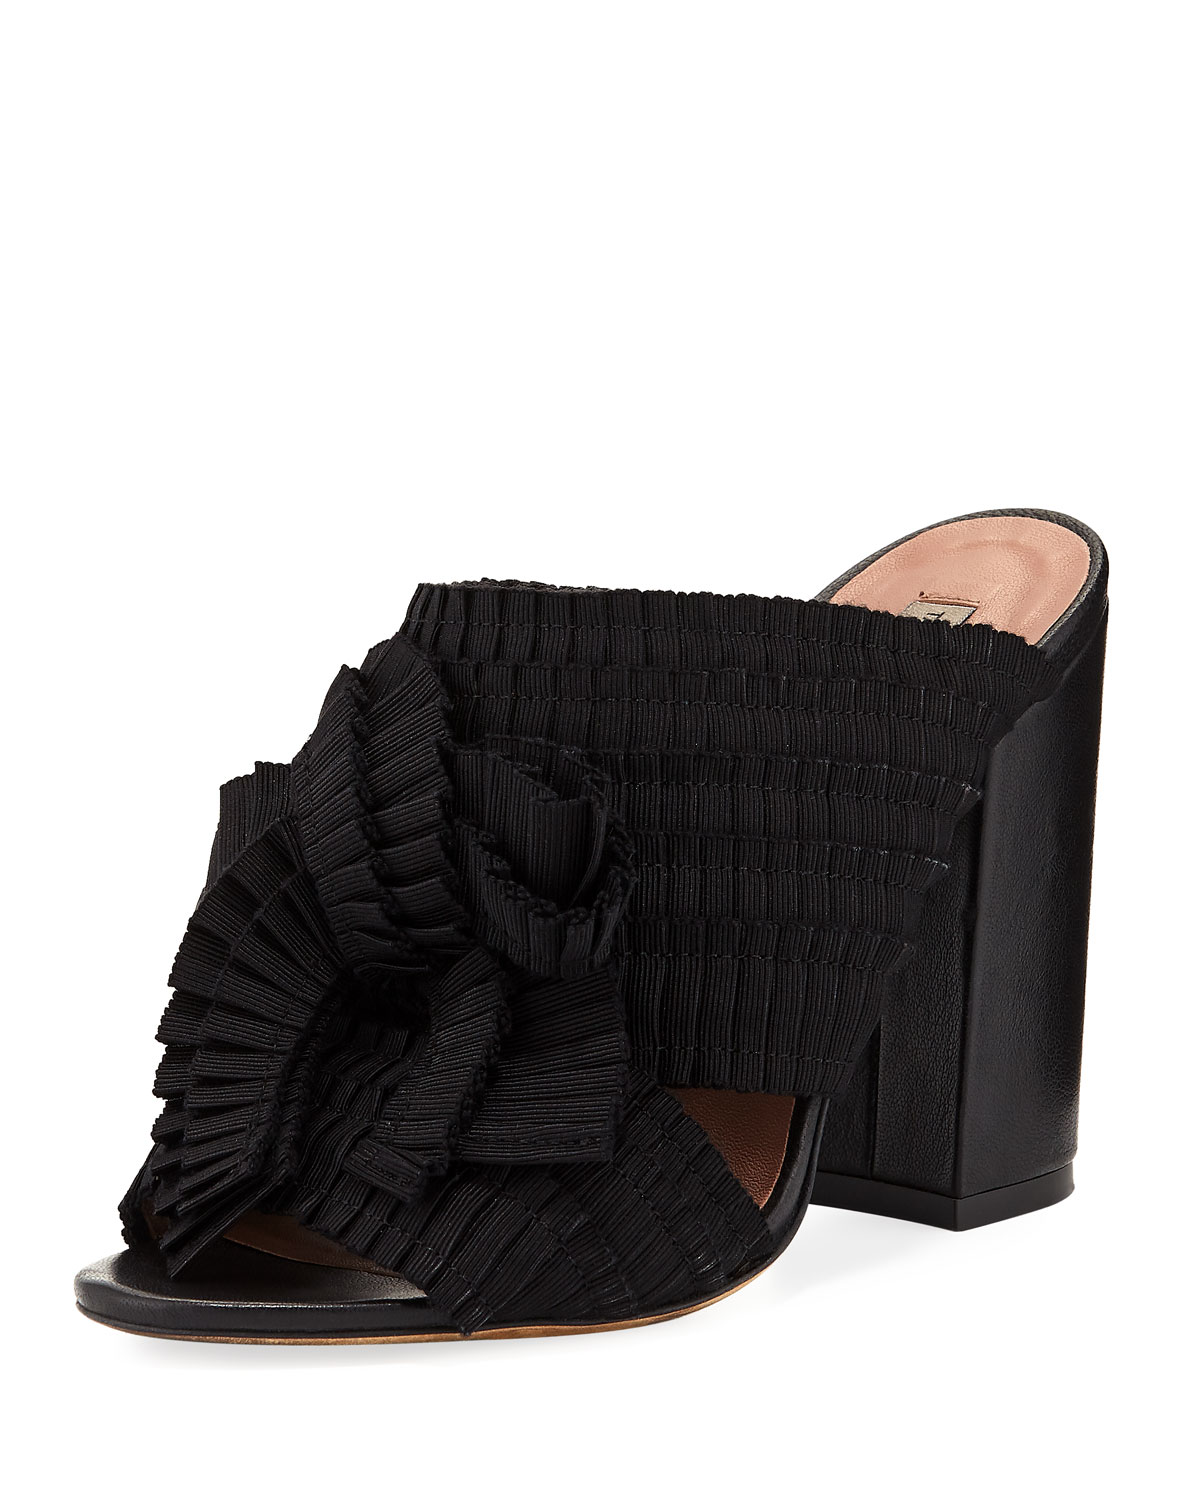 Beau Pleated Block-Heel Mule Sandal